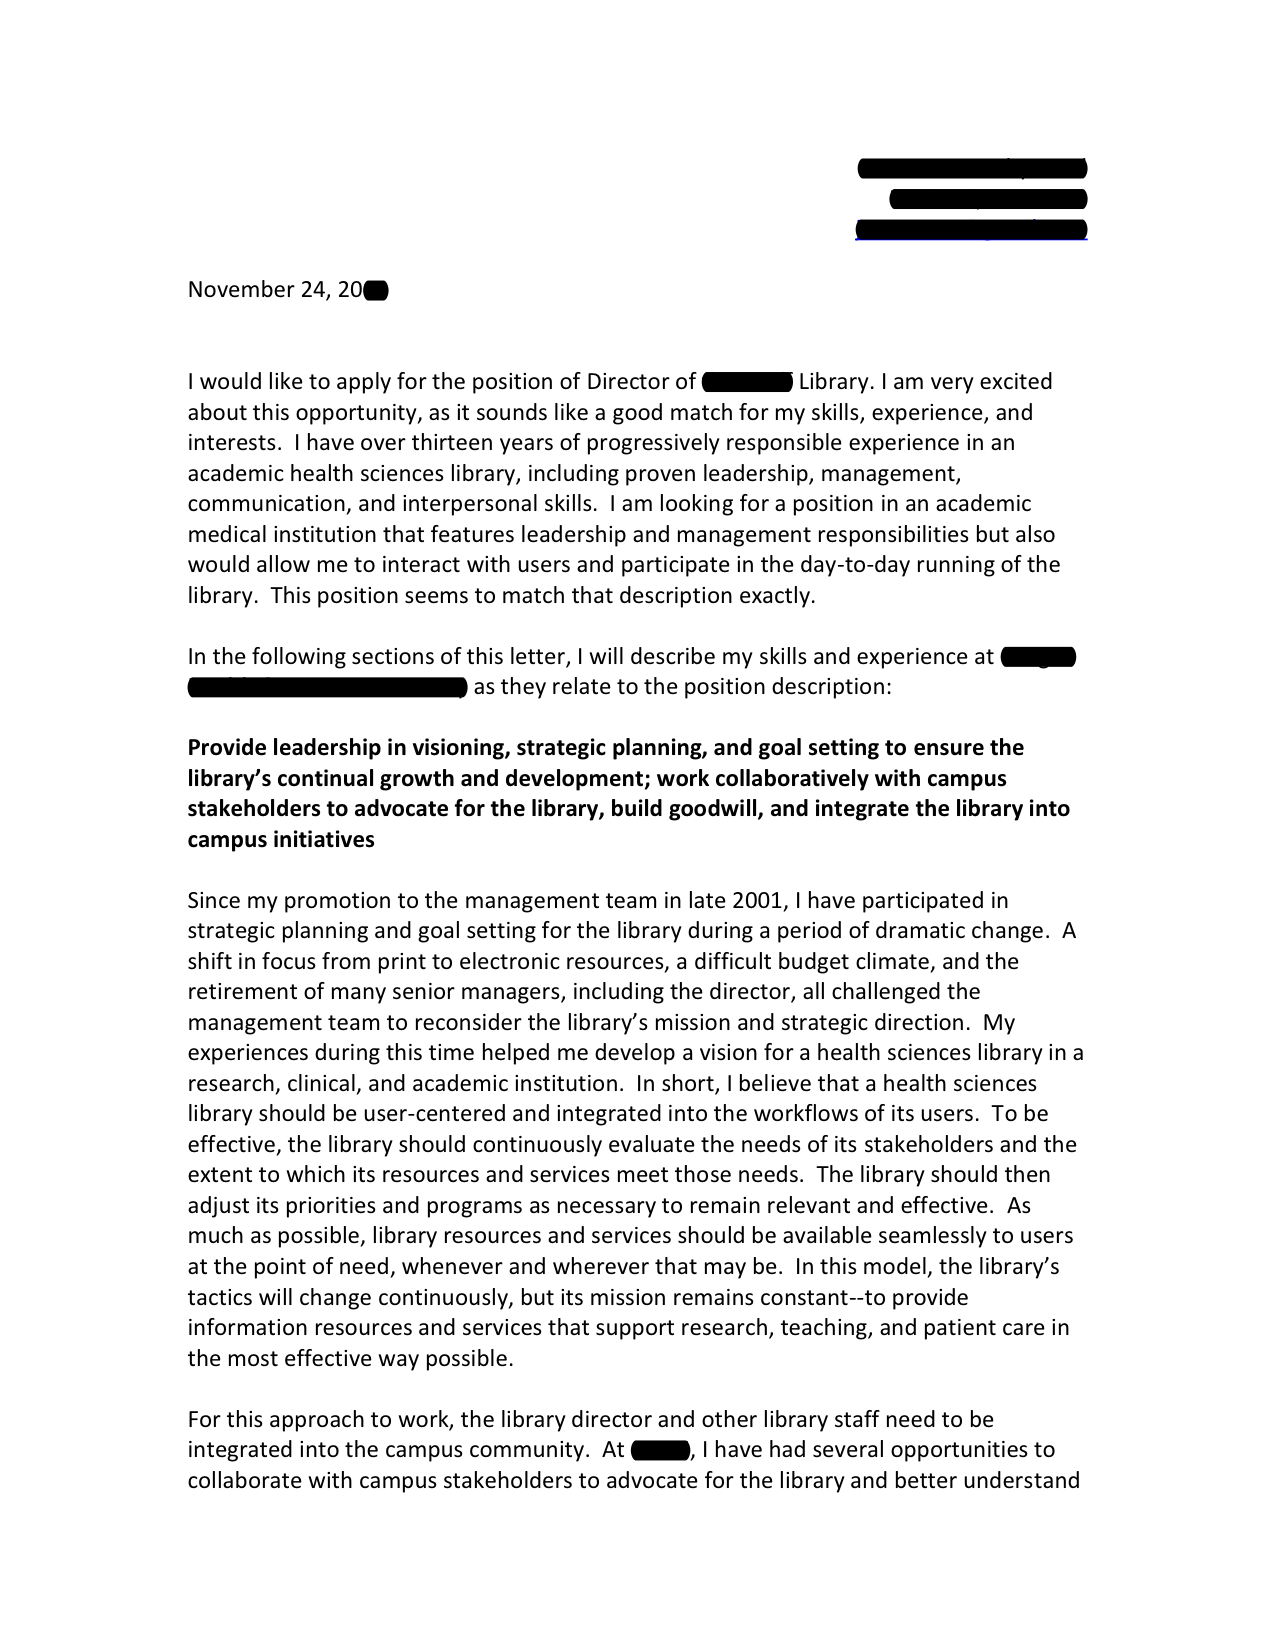 cover letter for strategic planning position